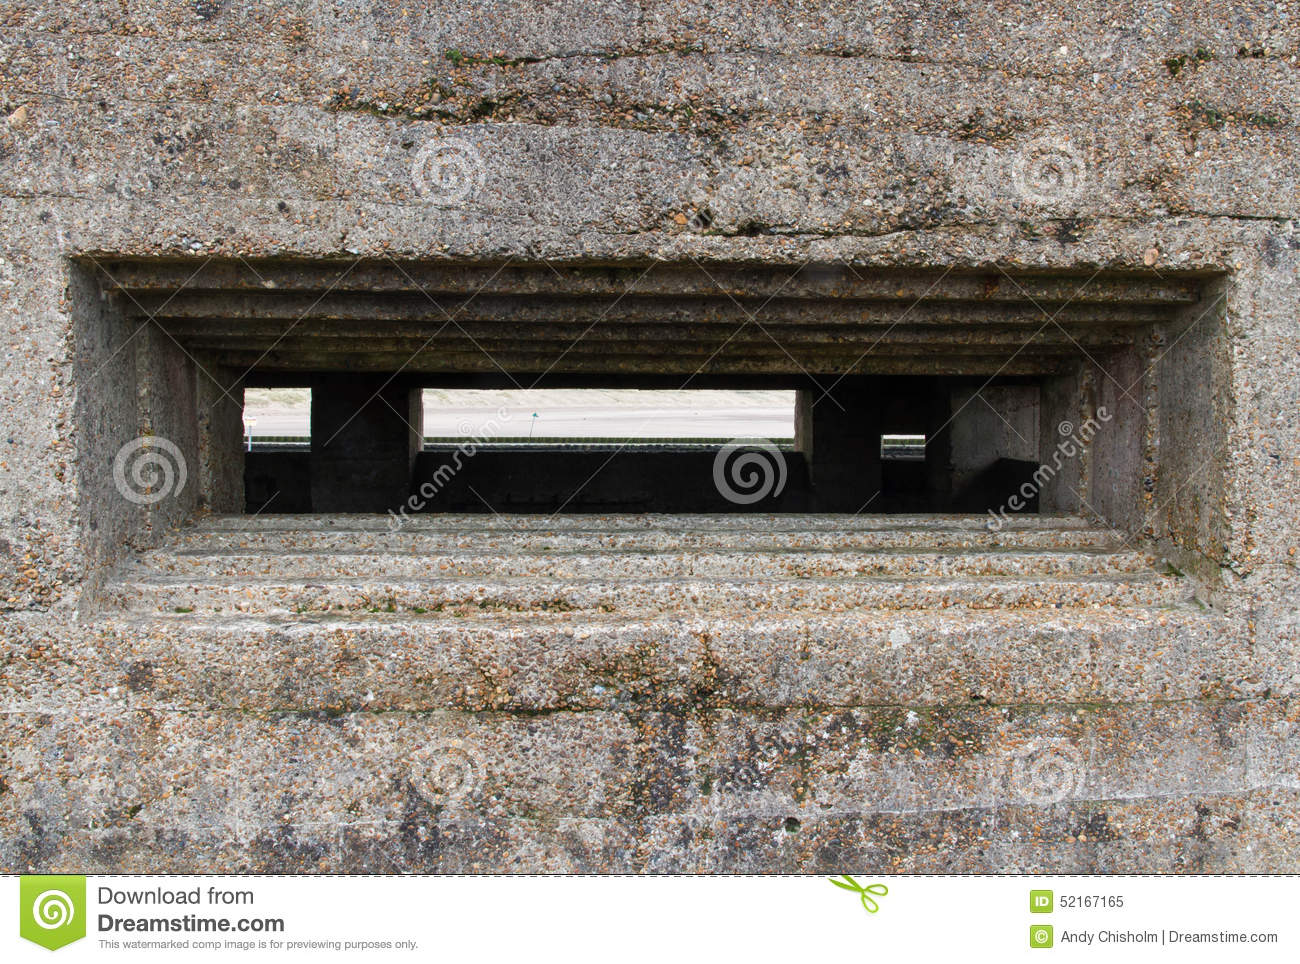 Embrasure Of Vickers Machine Gun Post, World War Two. Stock Photo.